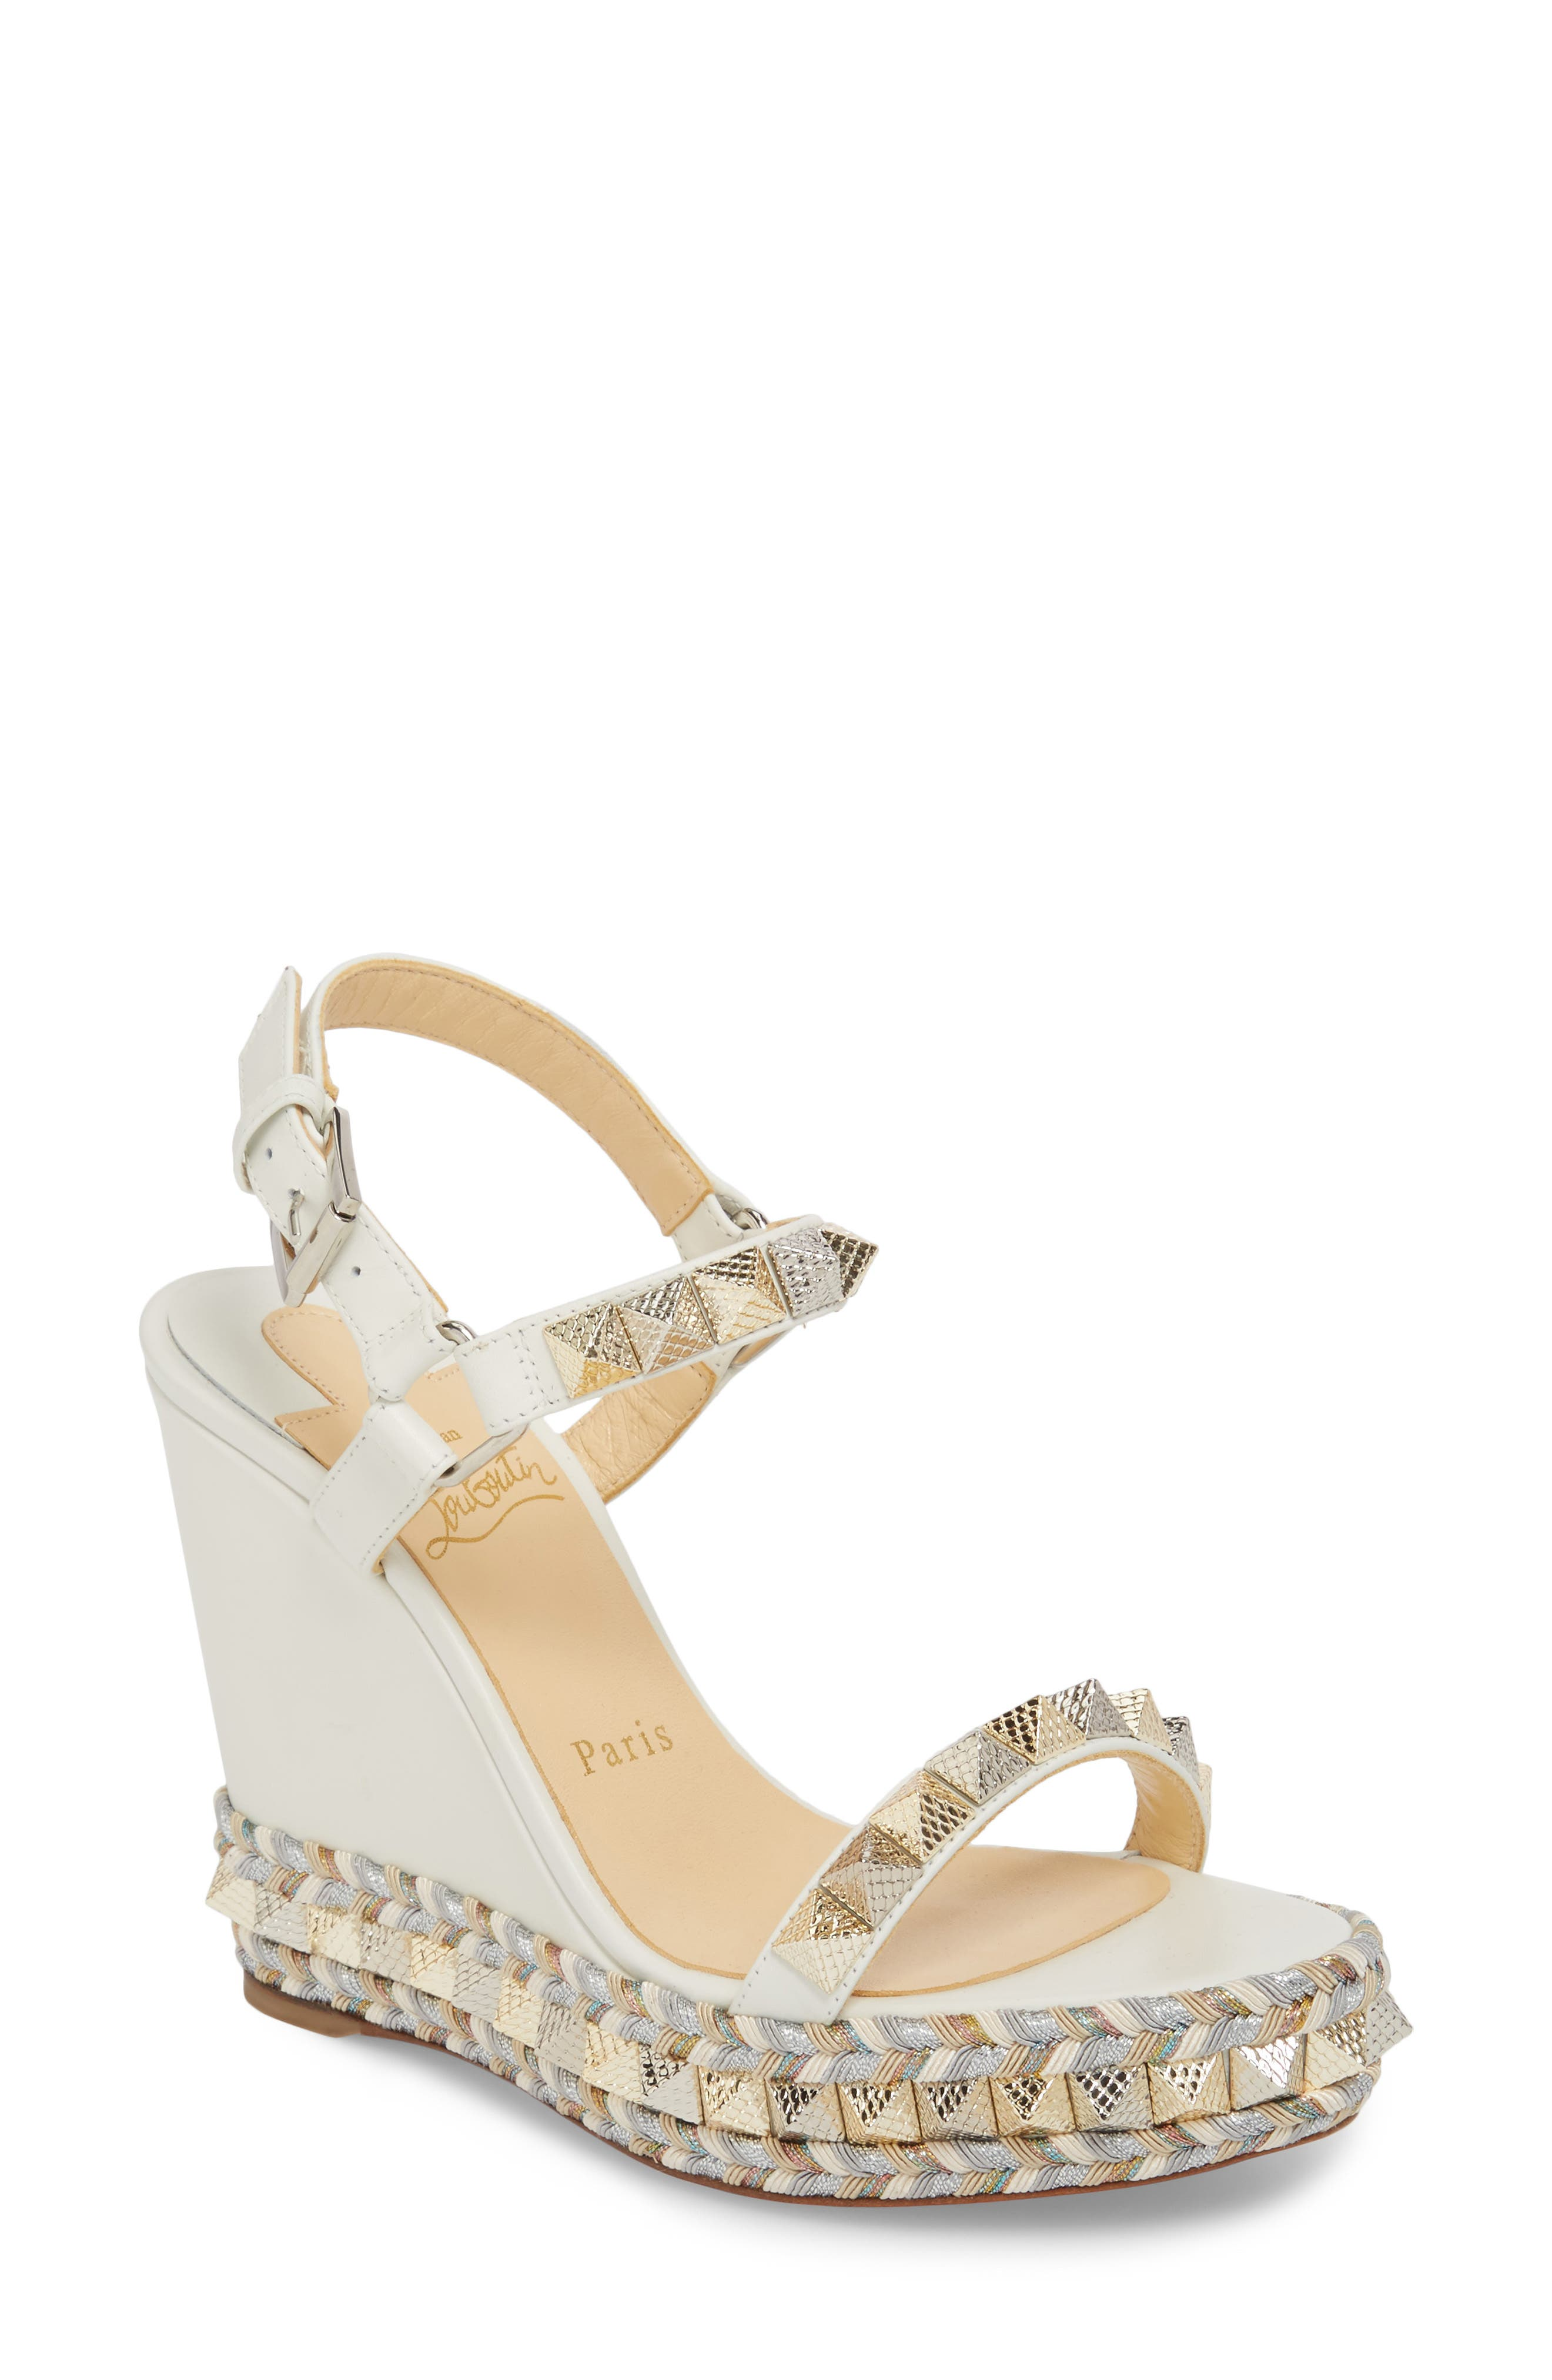 Pyraclou Wedge Sandal,                             Main thumbnail 1, color,                             LATTE WHITE